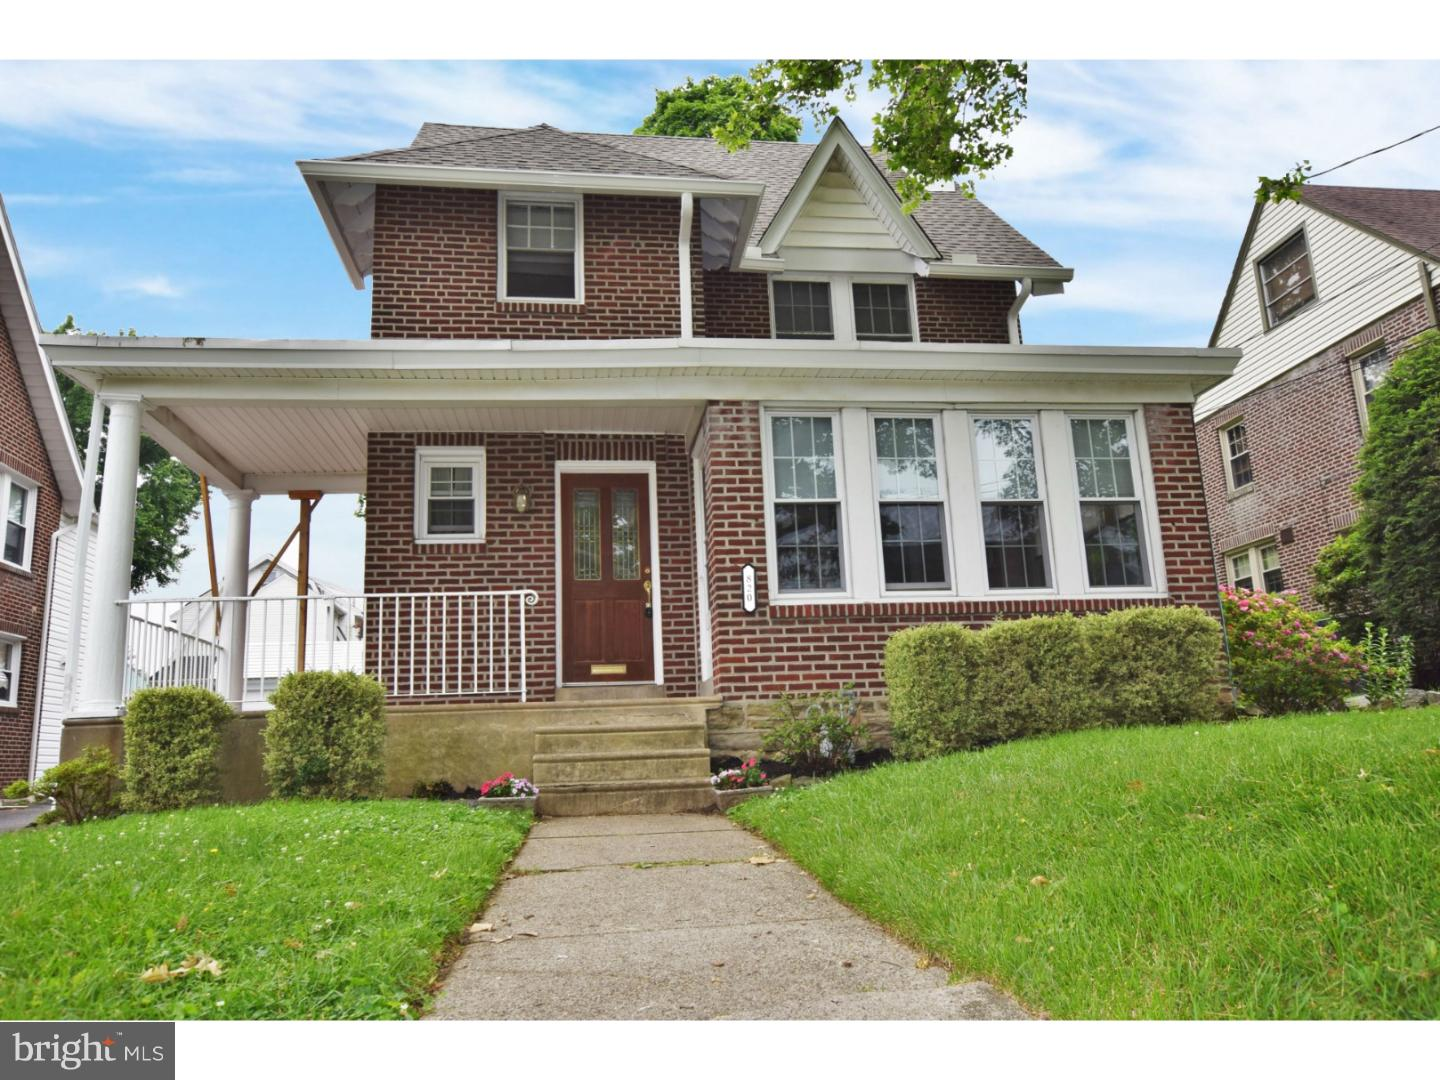 820 Turner Avenue Drexel Hill, PA 19026